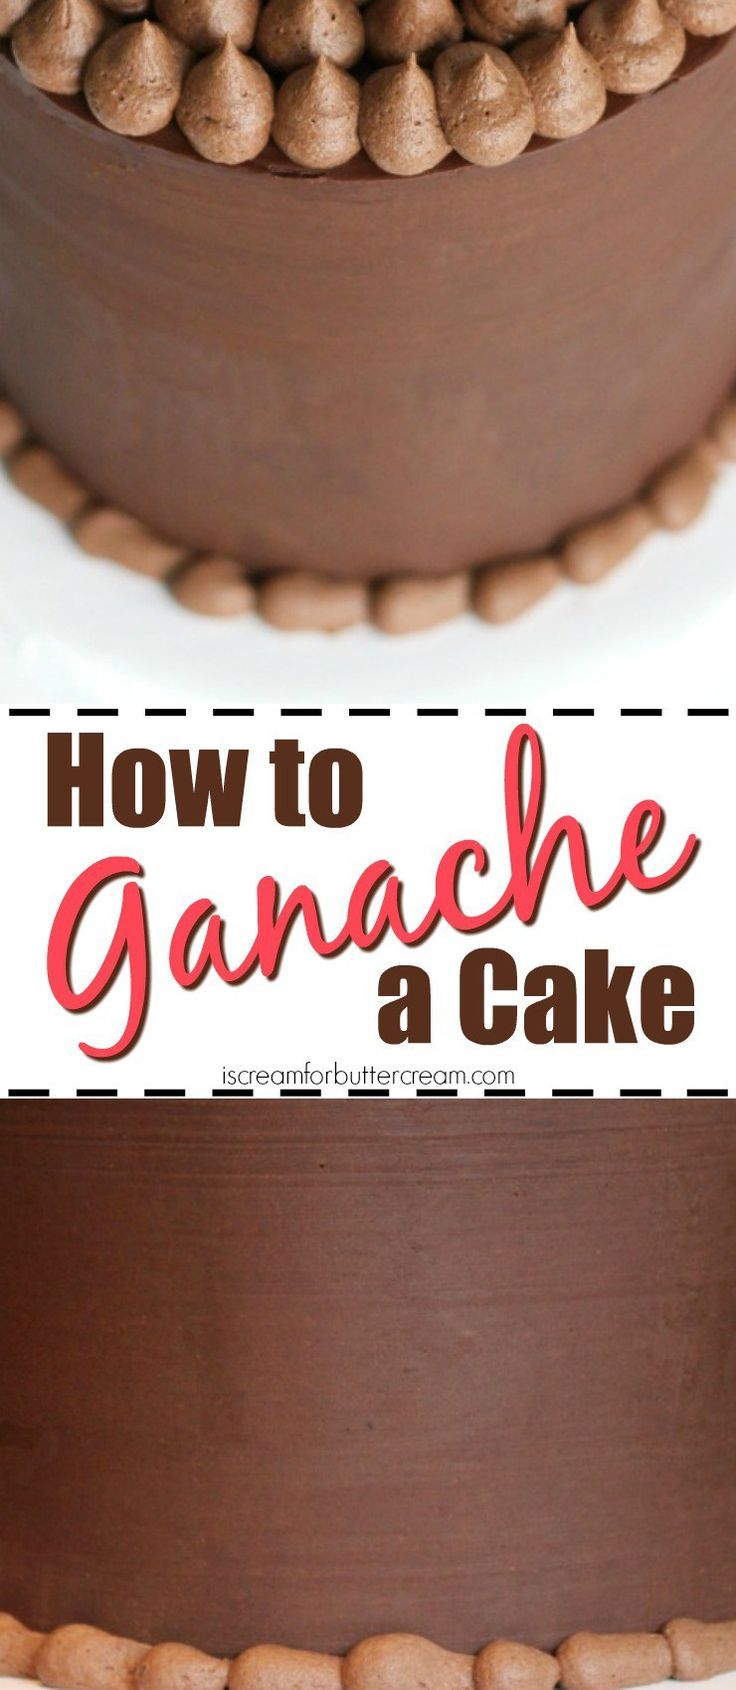 How to Ganache a Cake Pinterest